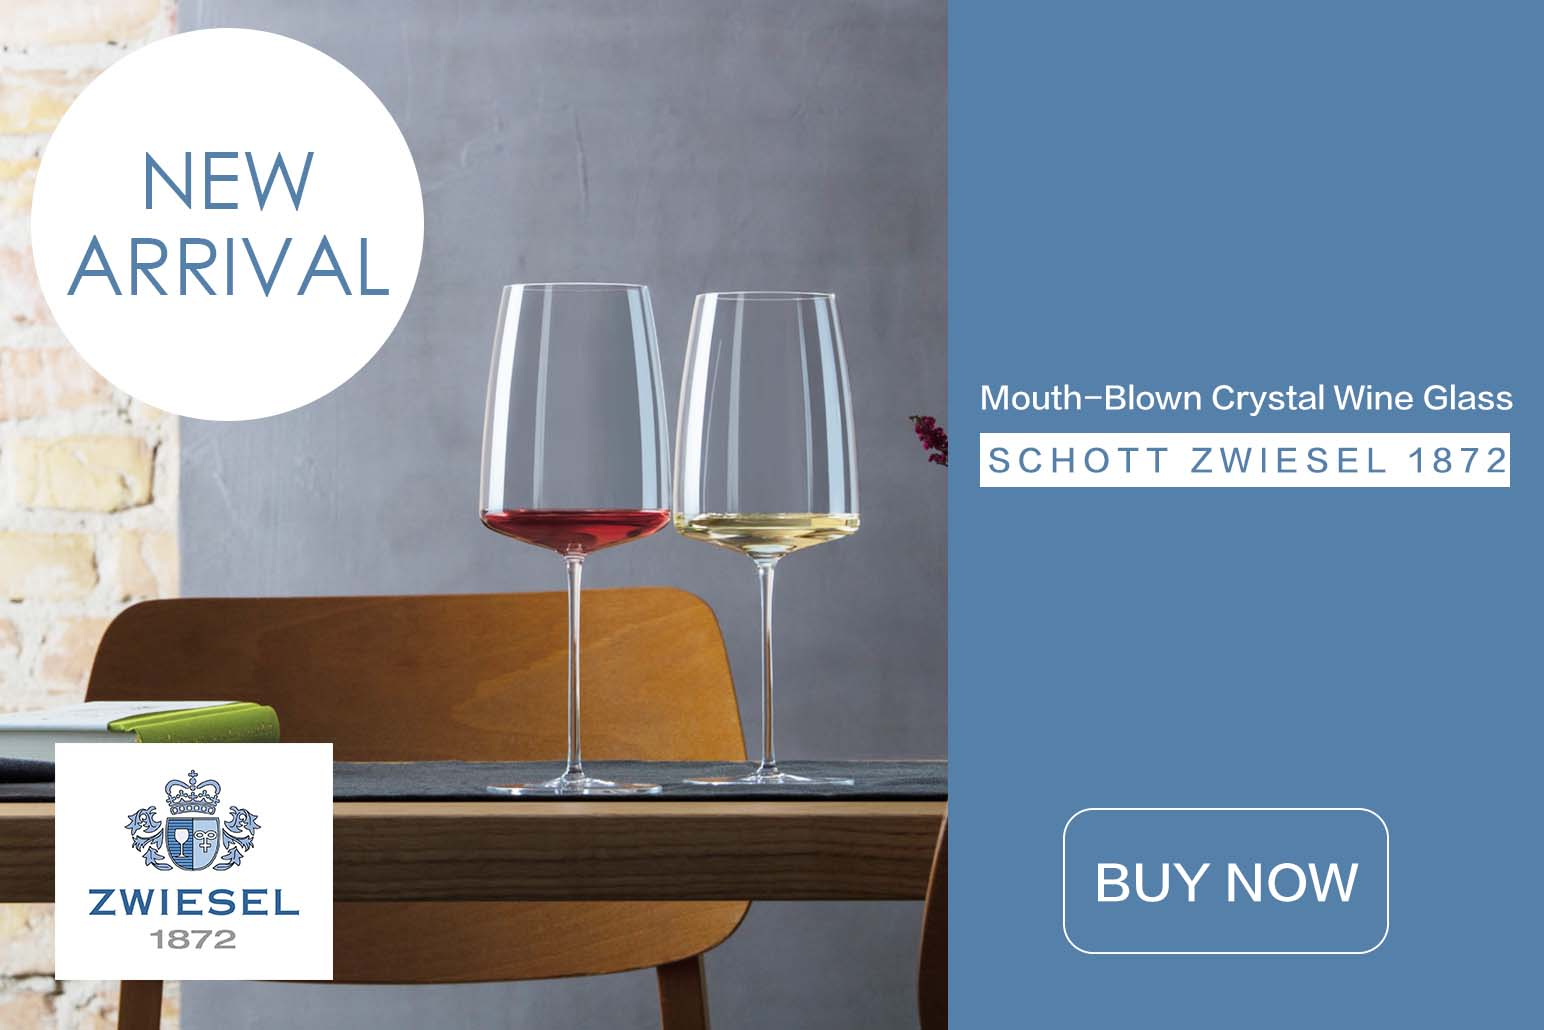 Maitre de Vin Wine Accessories Schott Zwiesel Wine Glass 水晶酒杯